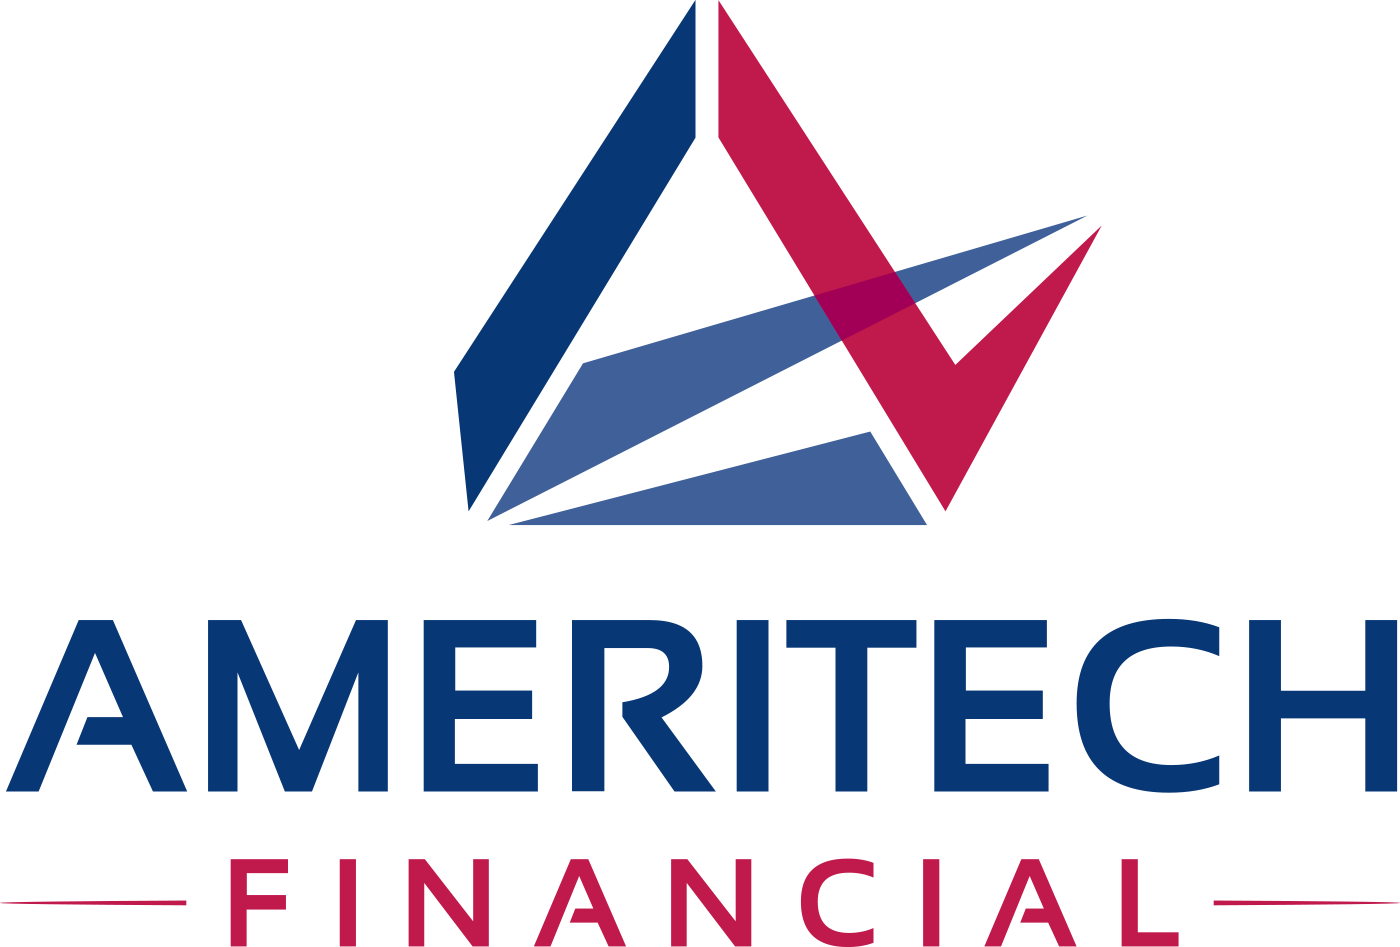 Ameritech Financial: Borrowers Are Responsible for Paying Their Student Loan Debt